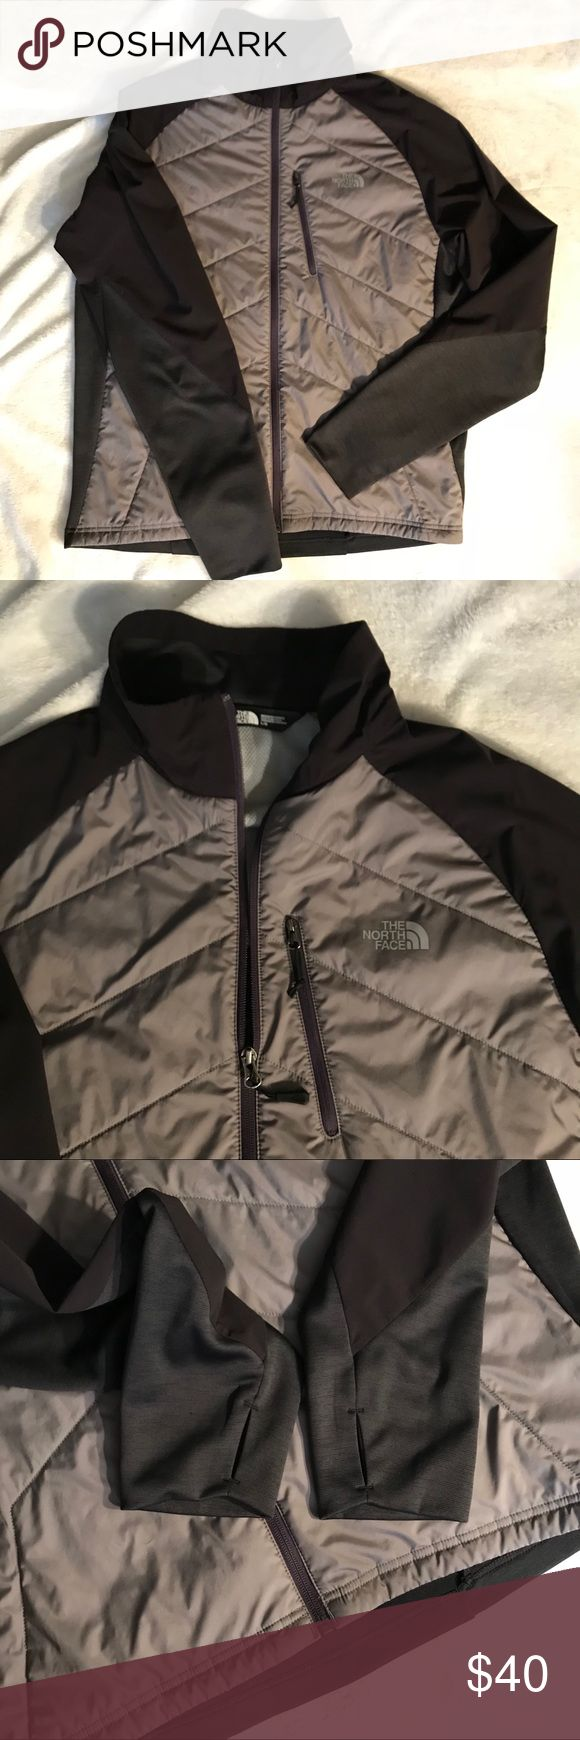 Men's The North Face windbreaker jacket size Large The north face brand  Men's large  Windbreaker light weight jacket  Front breast pocket  Thumb holes  Excellent condition!   Length: 27.5in Width: 22in  Sleeve to shoulder: 29in The North Face Jackets & Coats Windbreakers